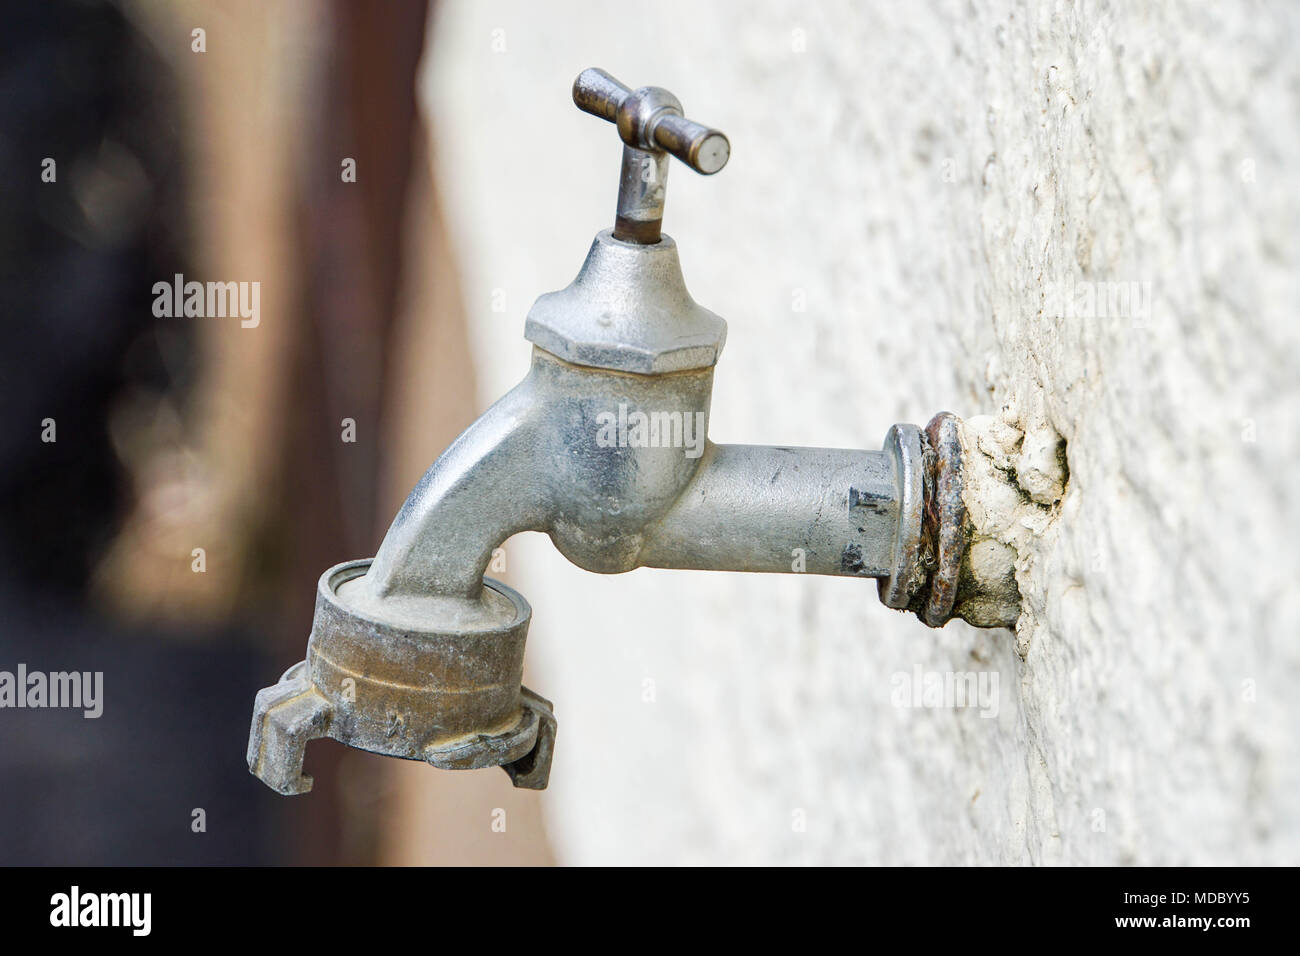 Vintage Outdoor Water Faucet Stock Photos & Vintage Outdoor Water ...